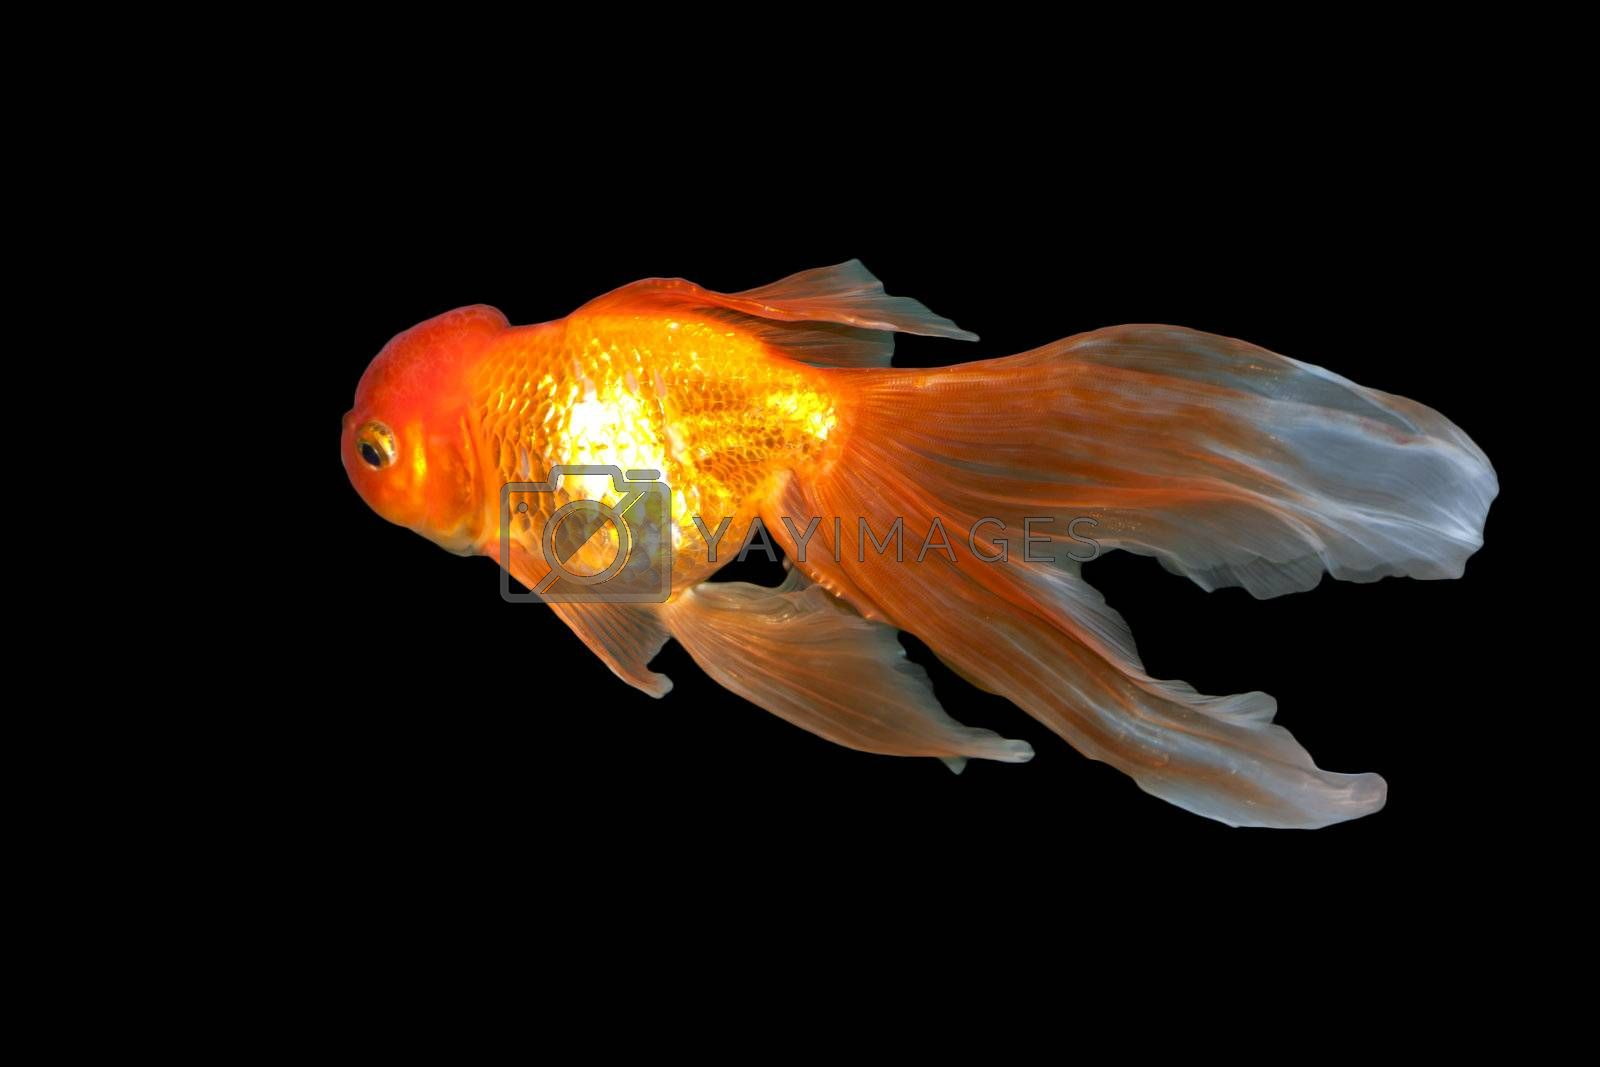 A beautiful, graceful goldfish swimming in the water